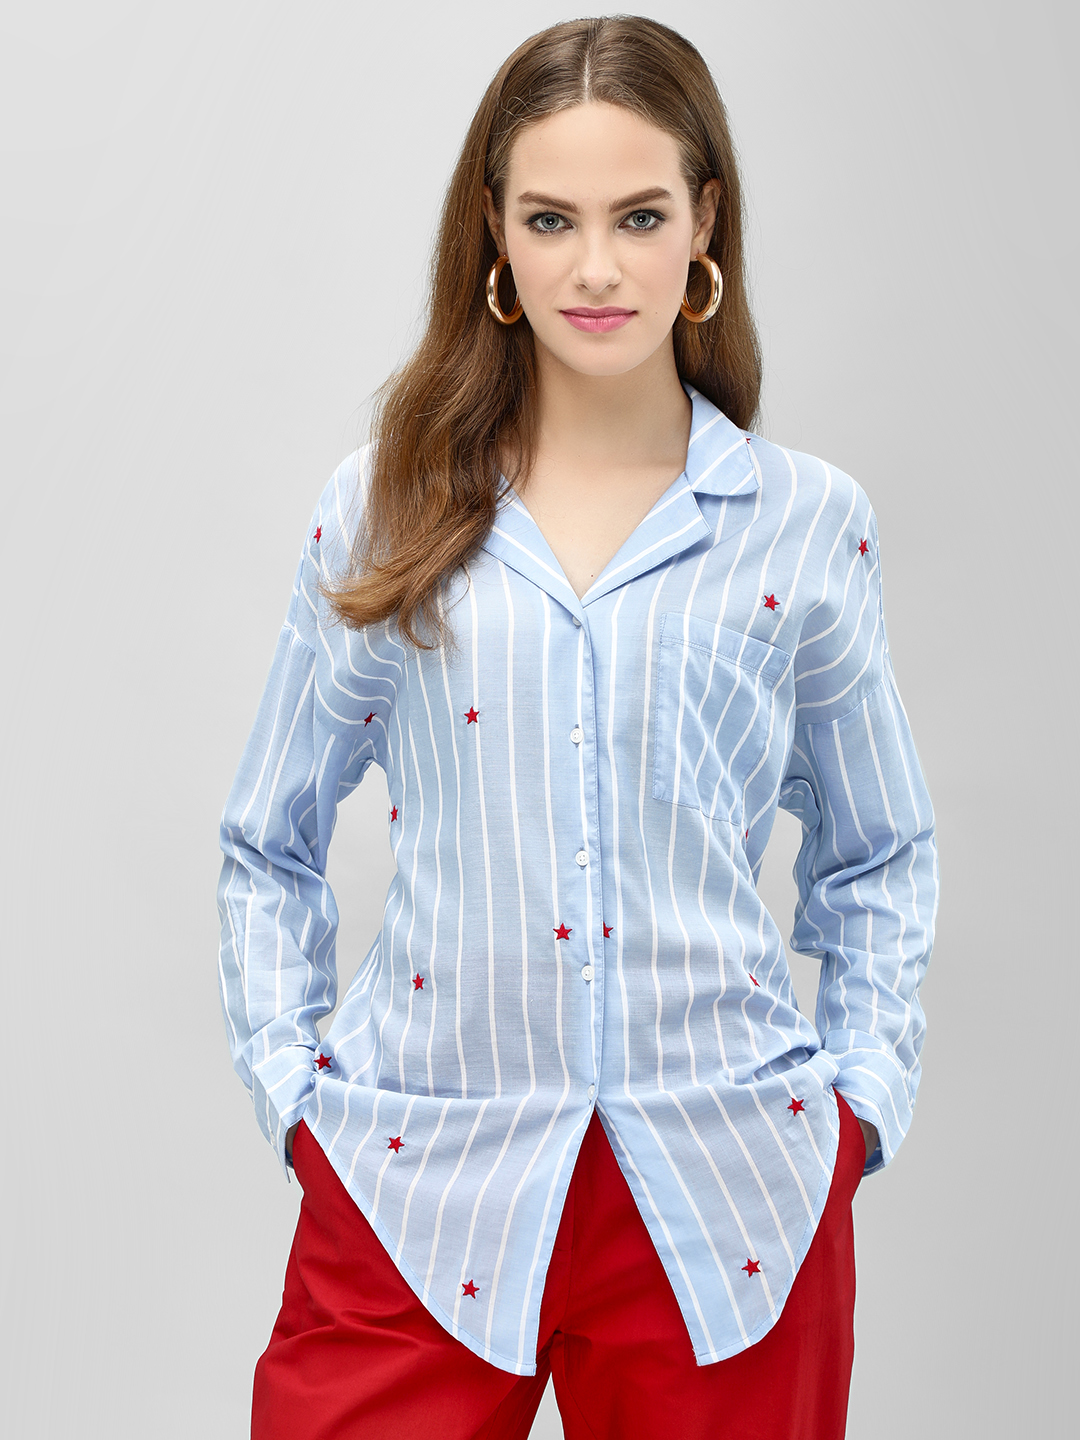 PostFold Multi Striped Star Embroidered Boxy Shirt 1